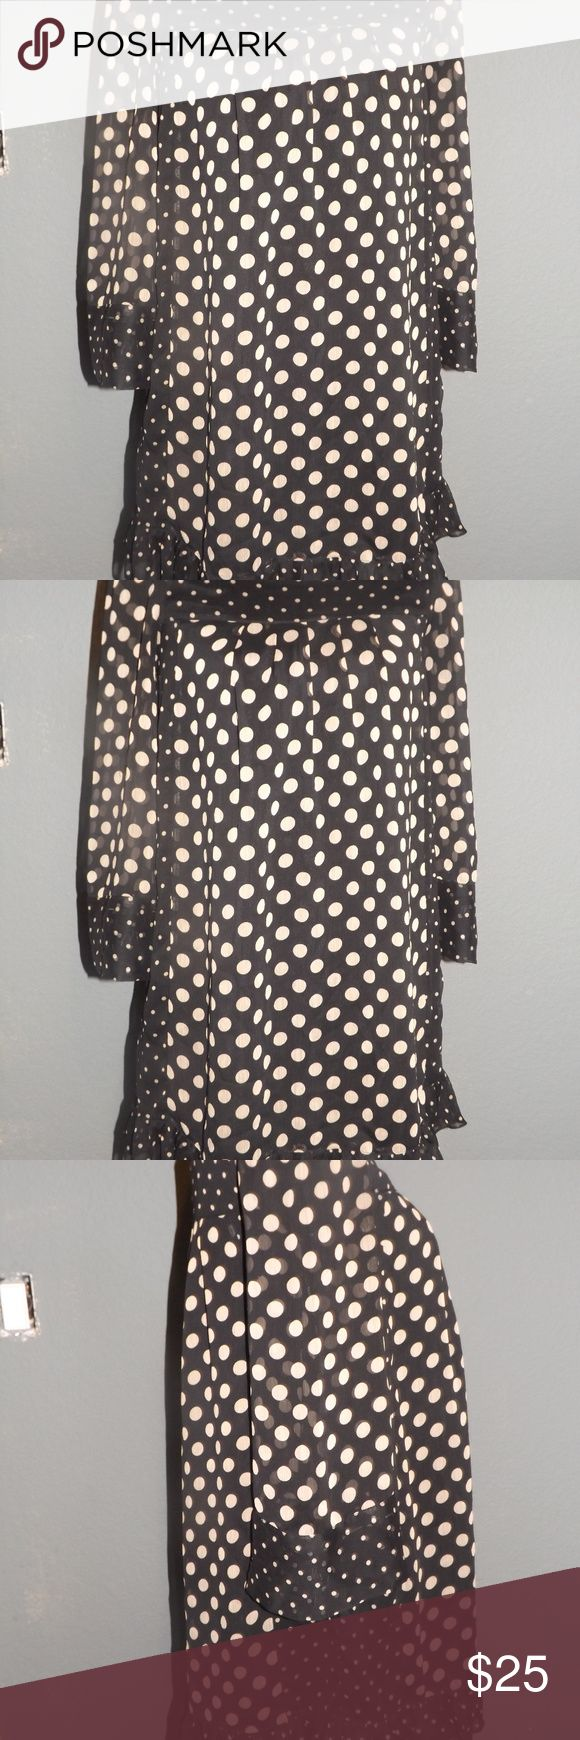 Jovovich Hawk Black Polka Dot Dress Adorable Black and Cream Polka Dot Shift Dress, by Jovovich Hawk for Target. Perfect condition. I would say it would fit an XS to M Jovovich Hawk for Target Dresses